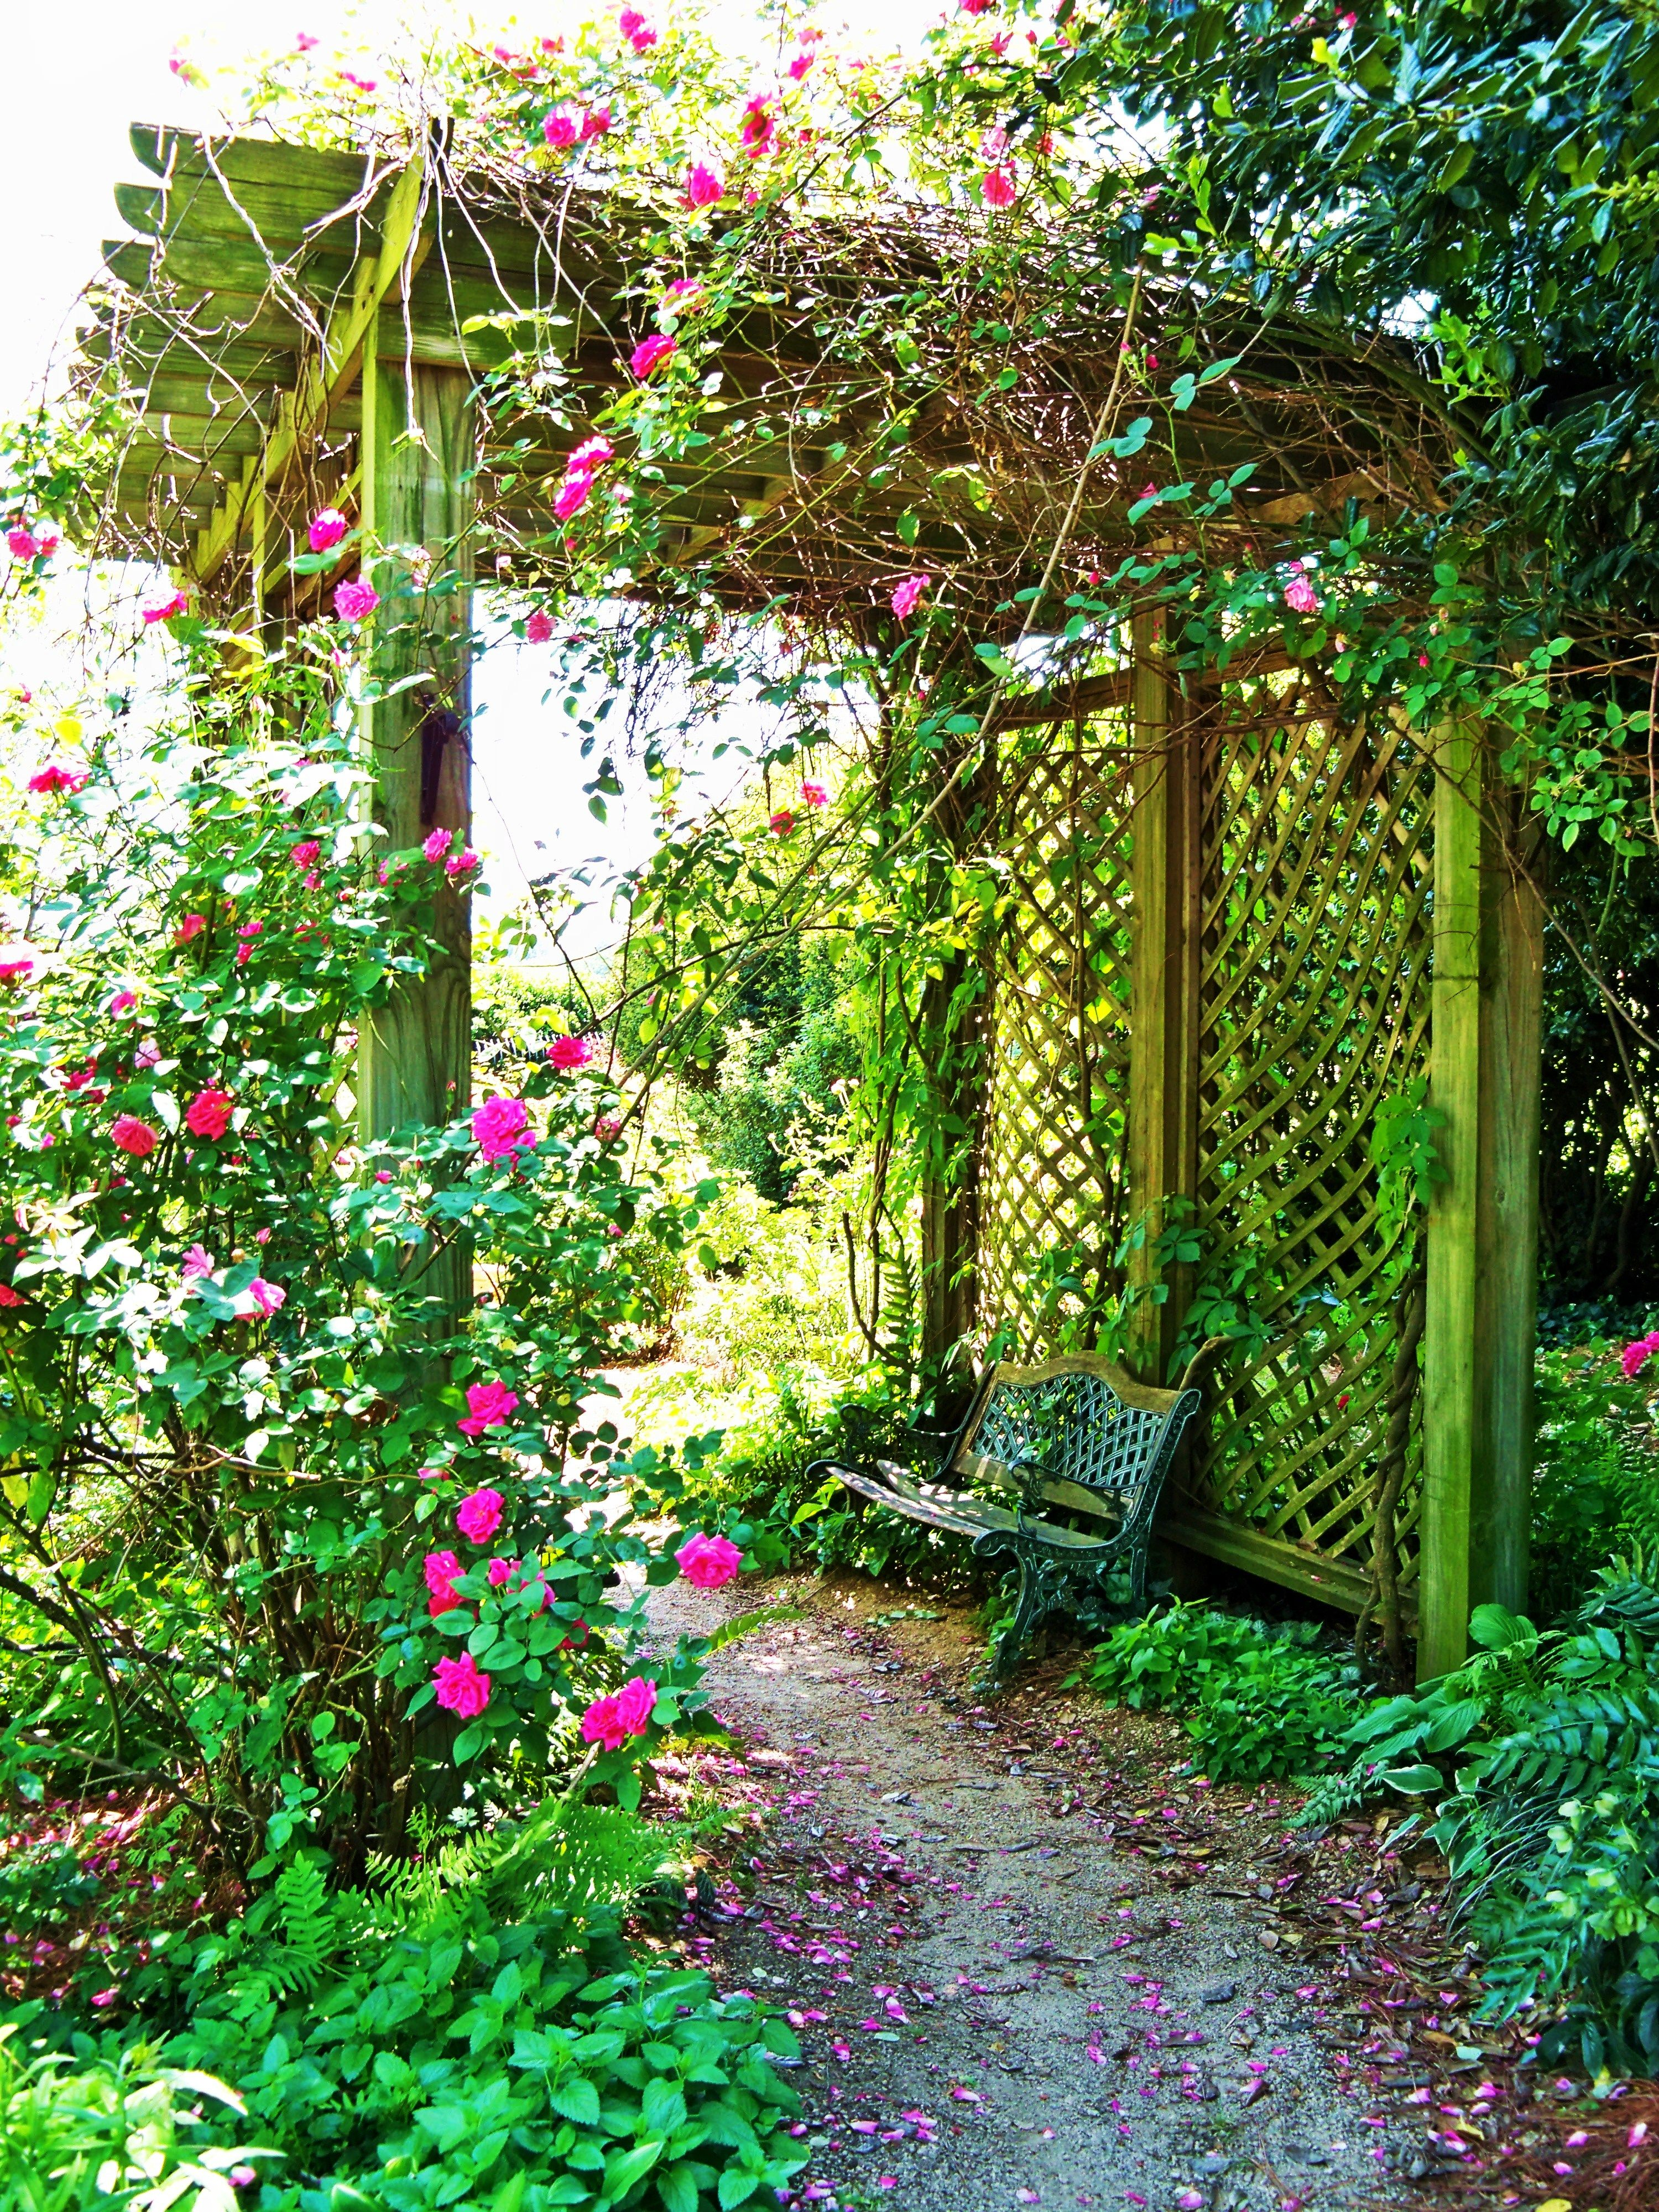 Top landscapers in charlotte nc - Mcgill Rose Garden In Noda Of Charlotte Nc